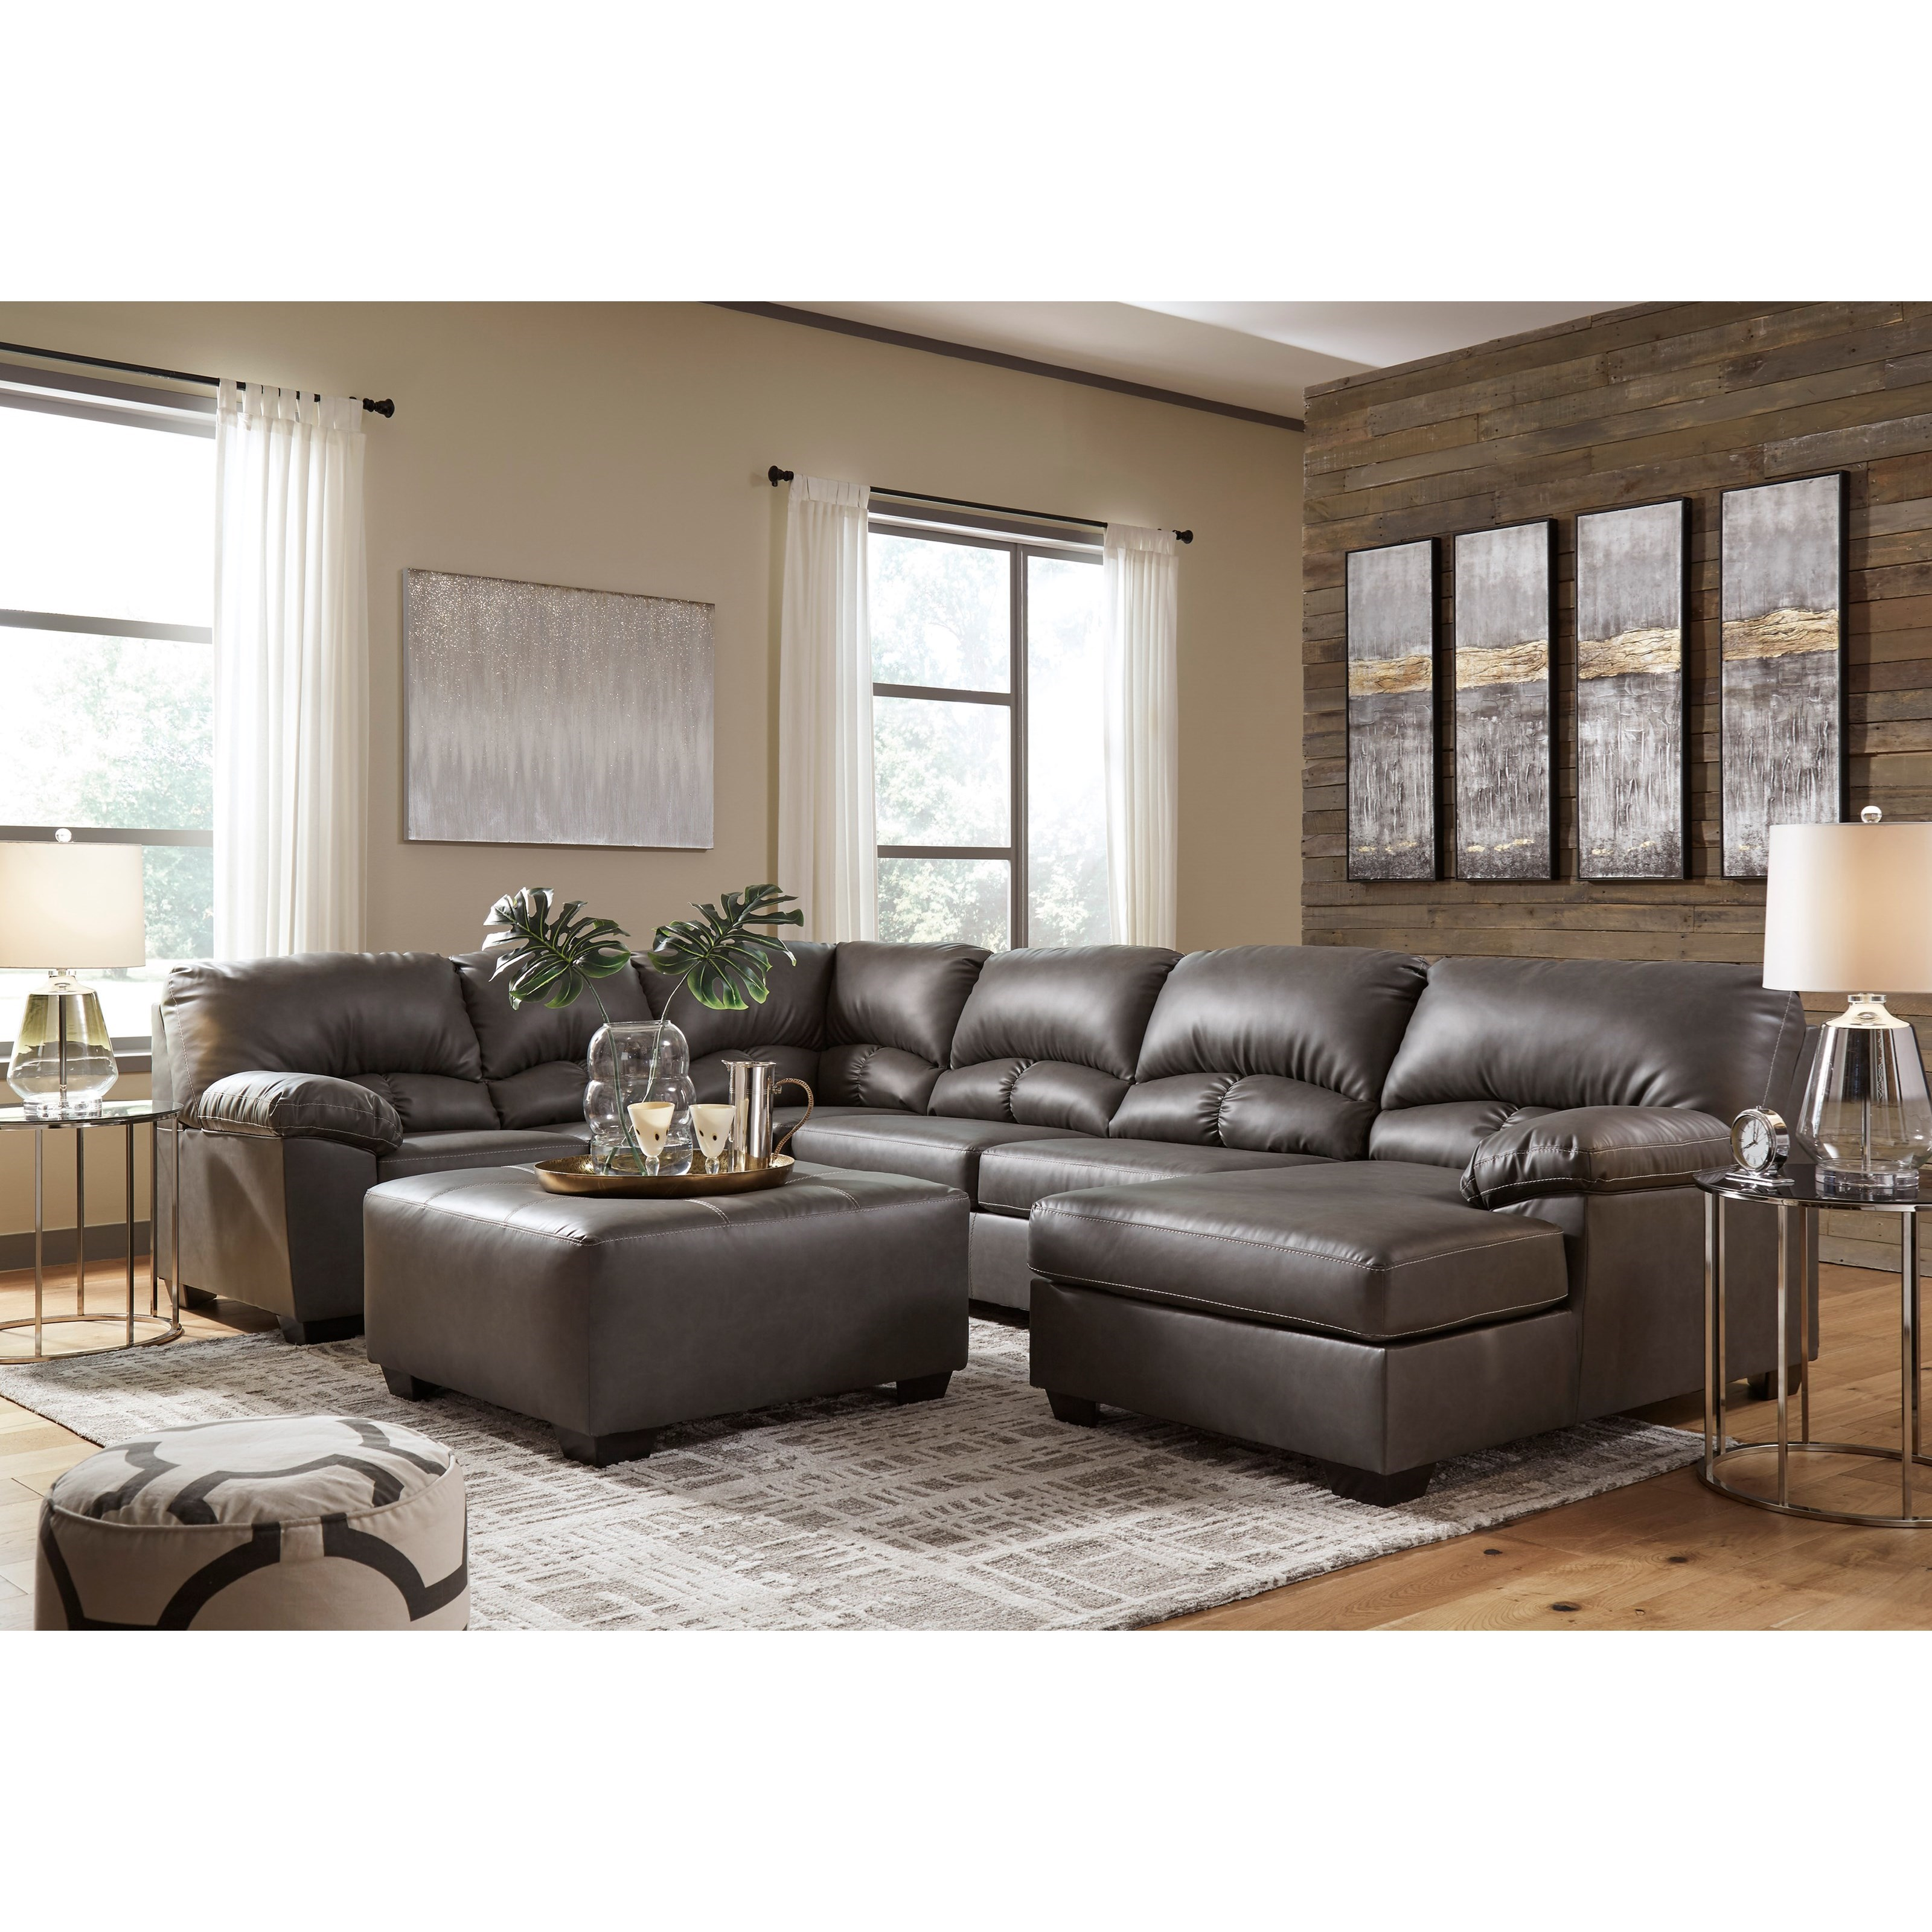 Aberton Living Room Group by Benchcraft at Catalog Outlet